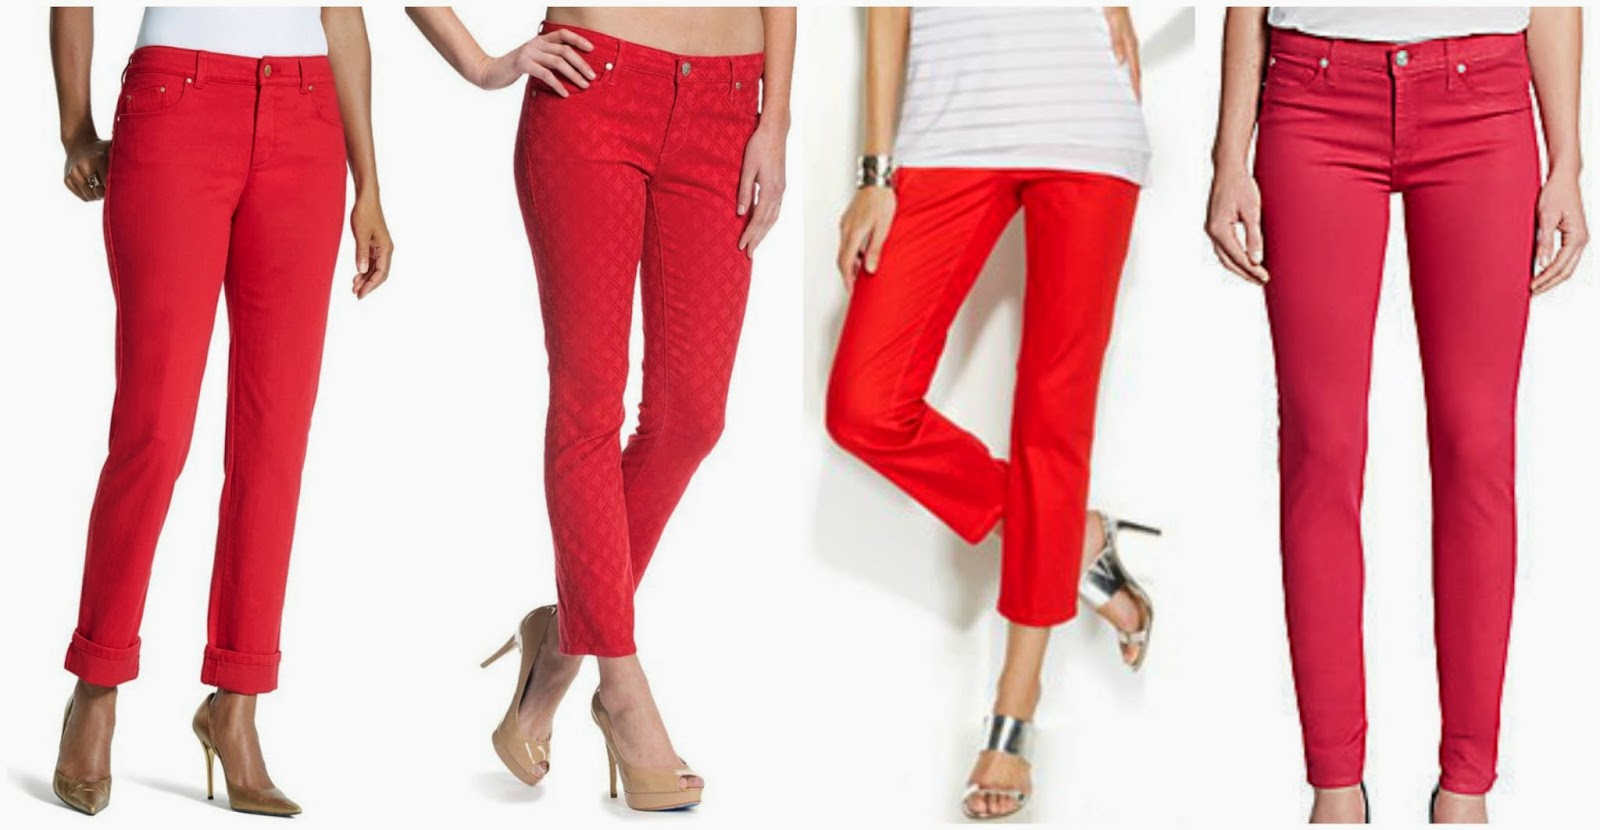 Wear It For Less: KATE HUDSON: RED JEANS